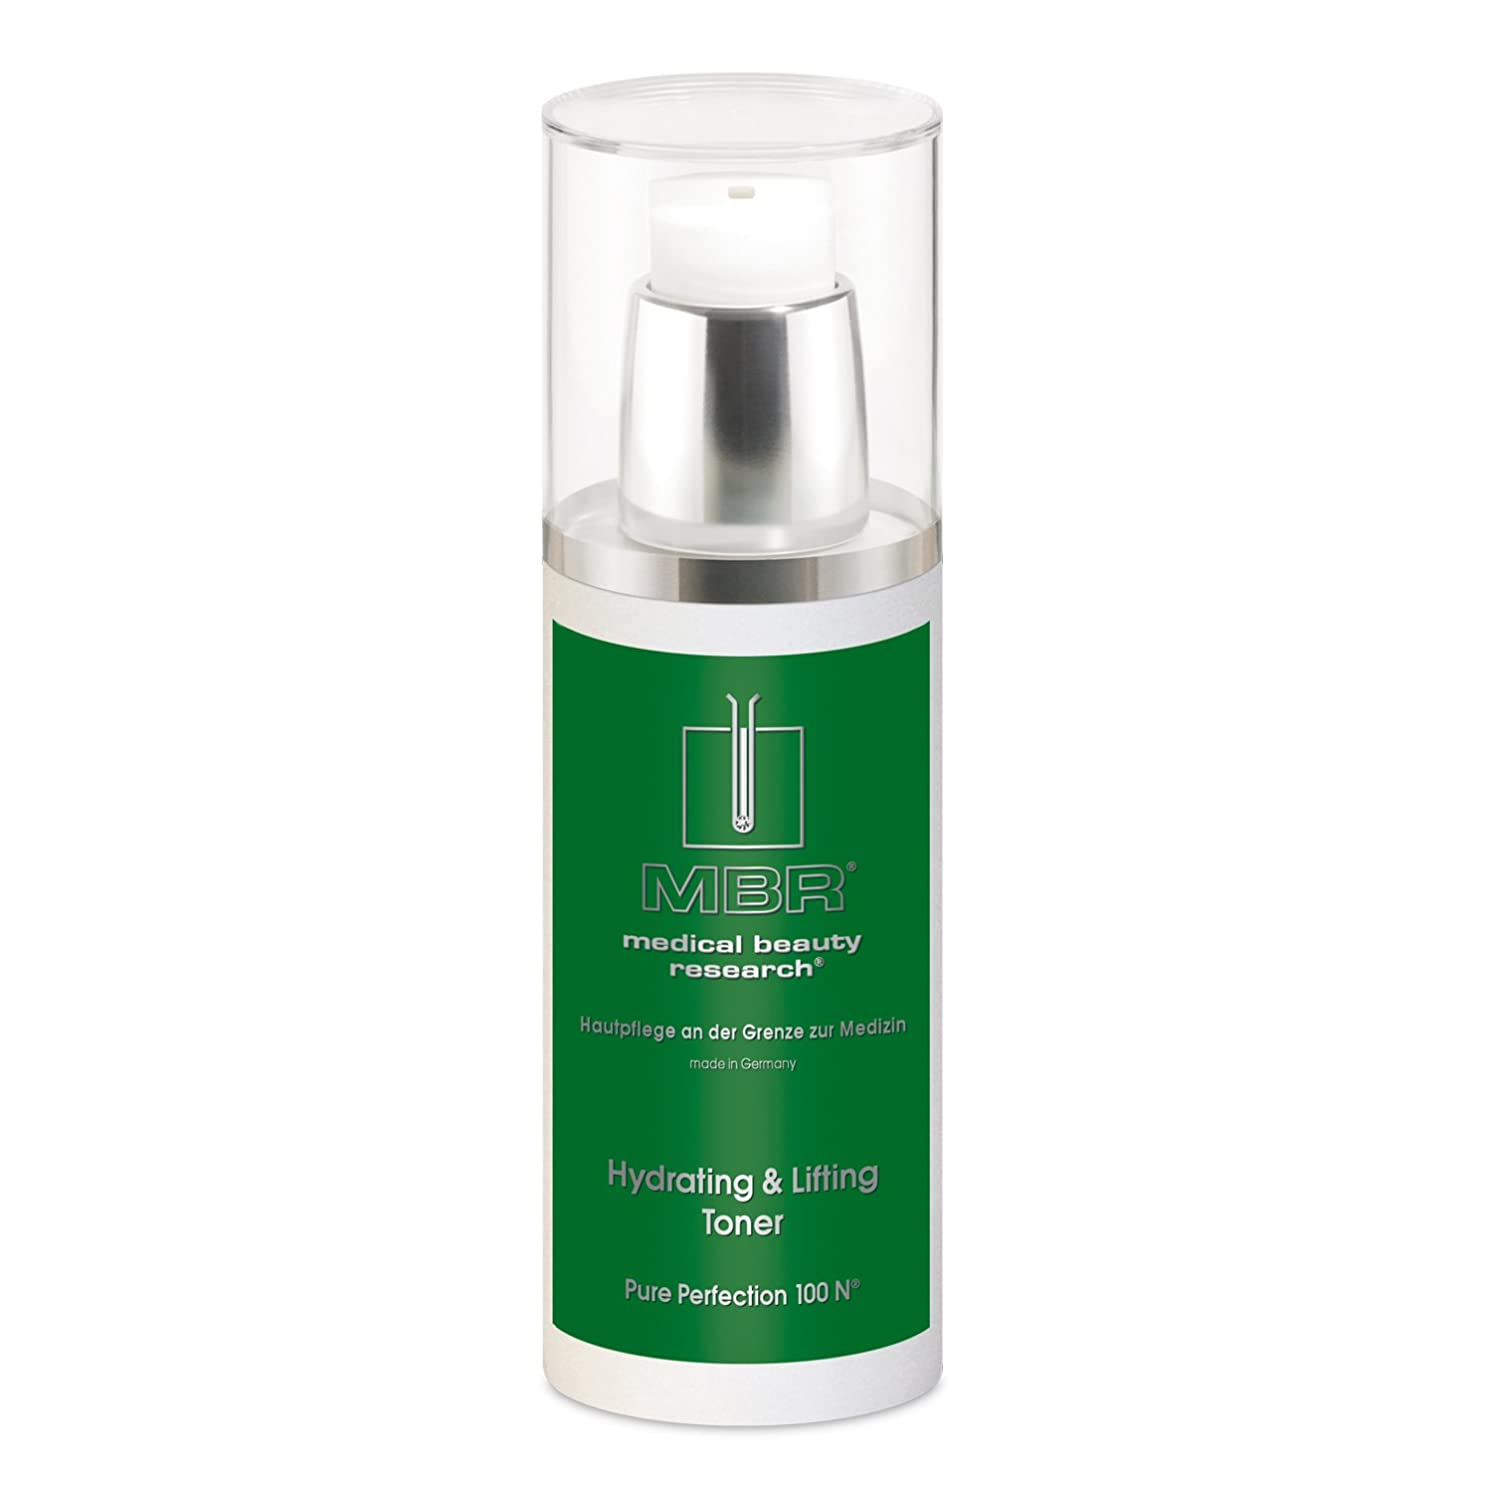 ローン水差し四半期MBR Medical Beauty Research Pure Perfection 100N Hydrating & Lifting Toner 150ml/5.1oz並行輸入品